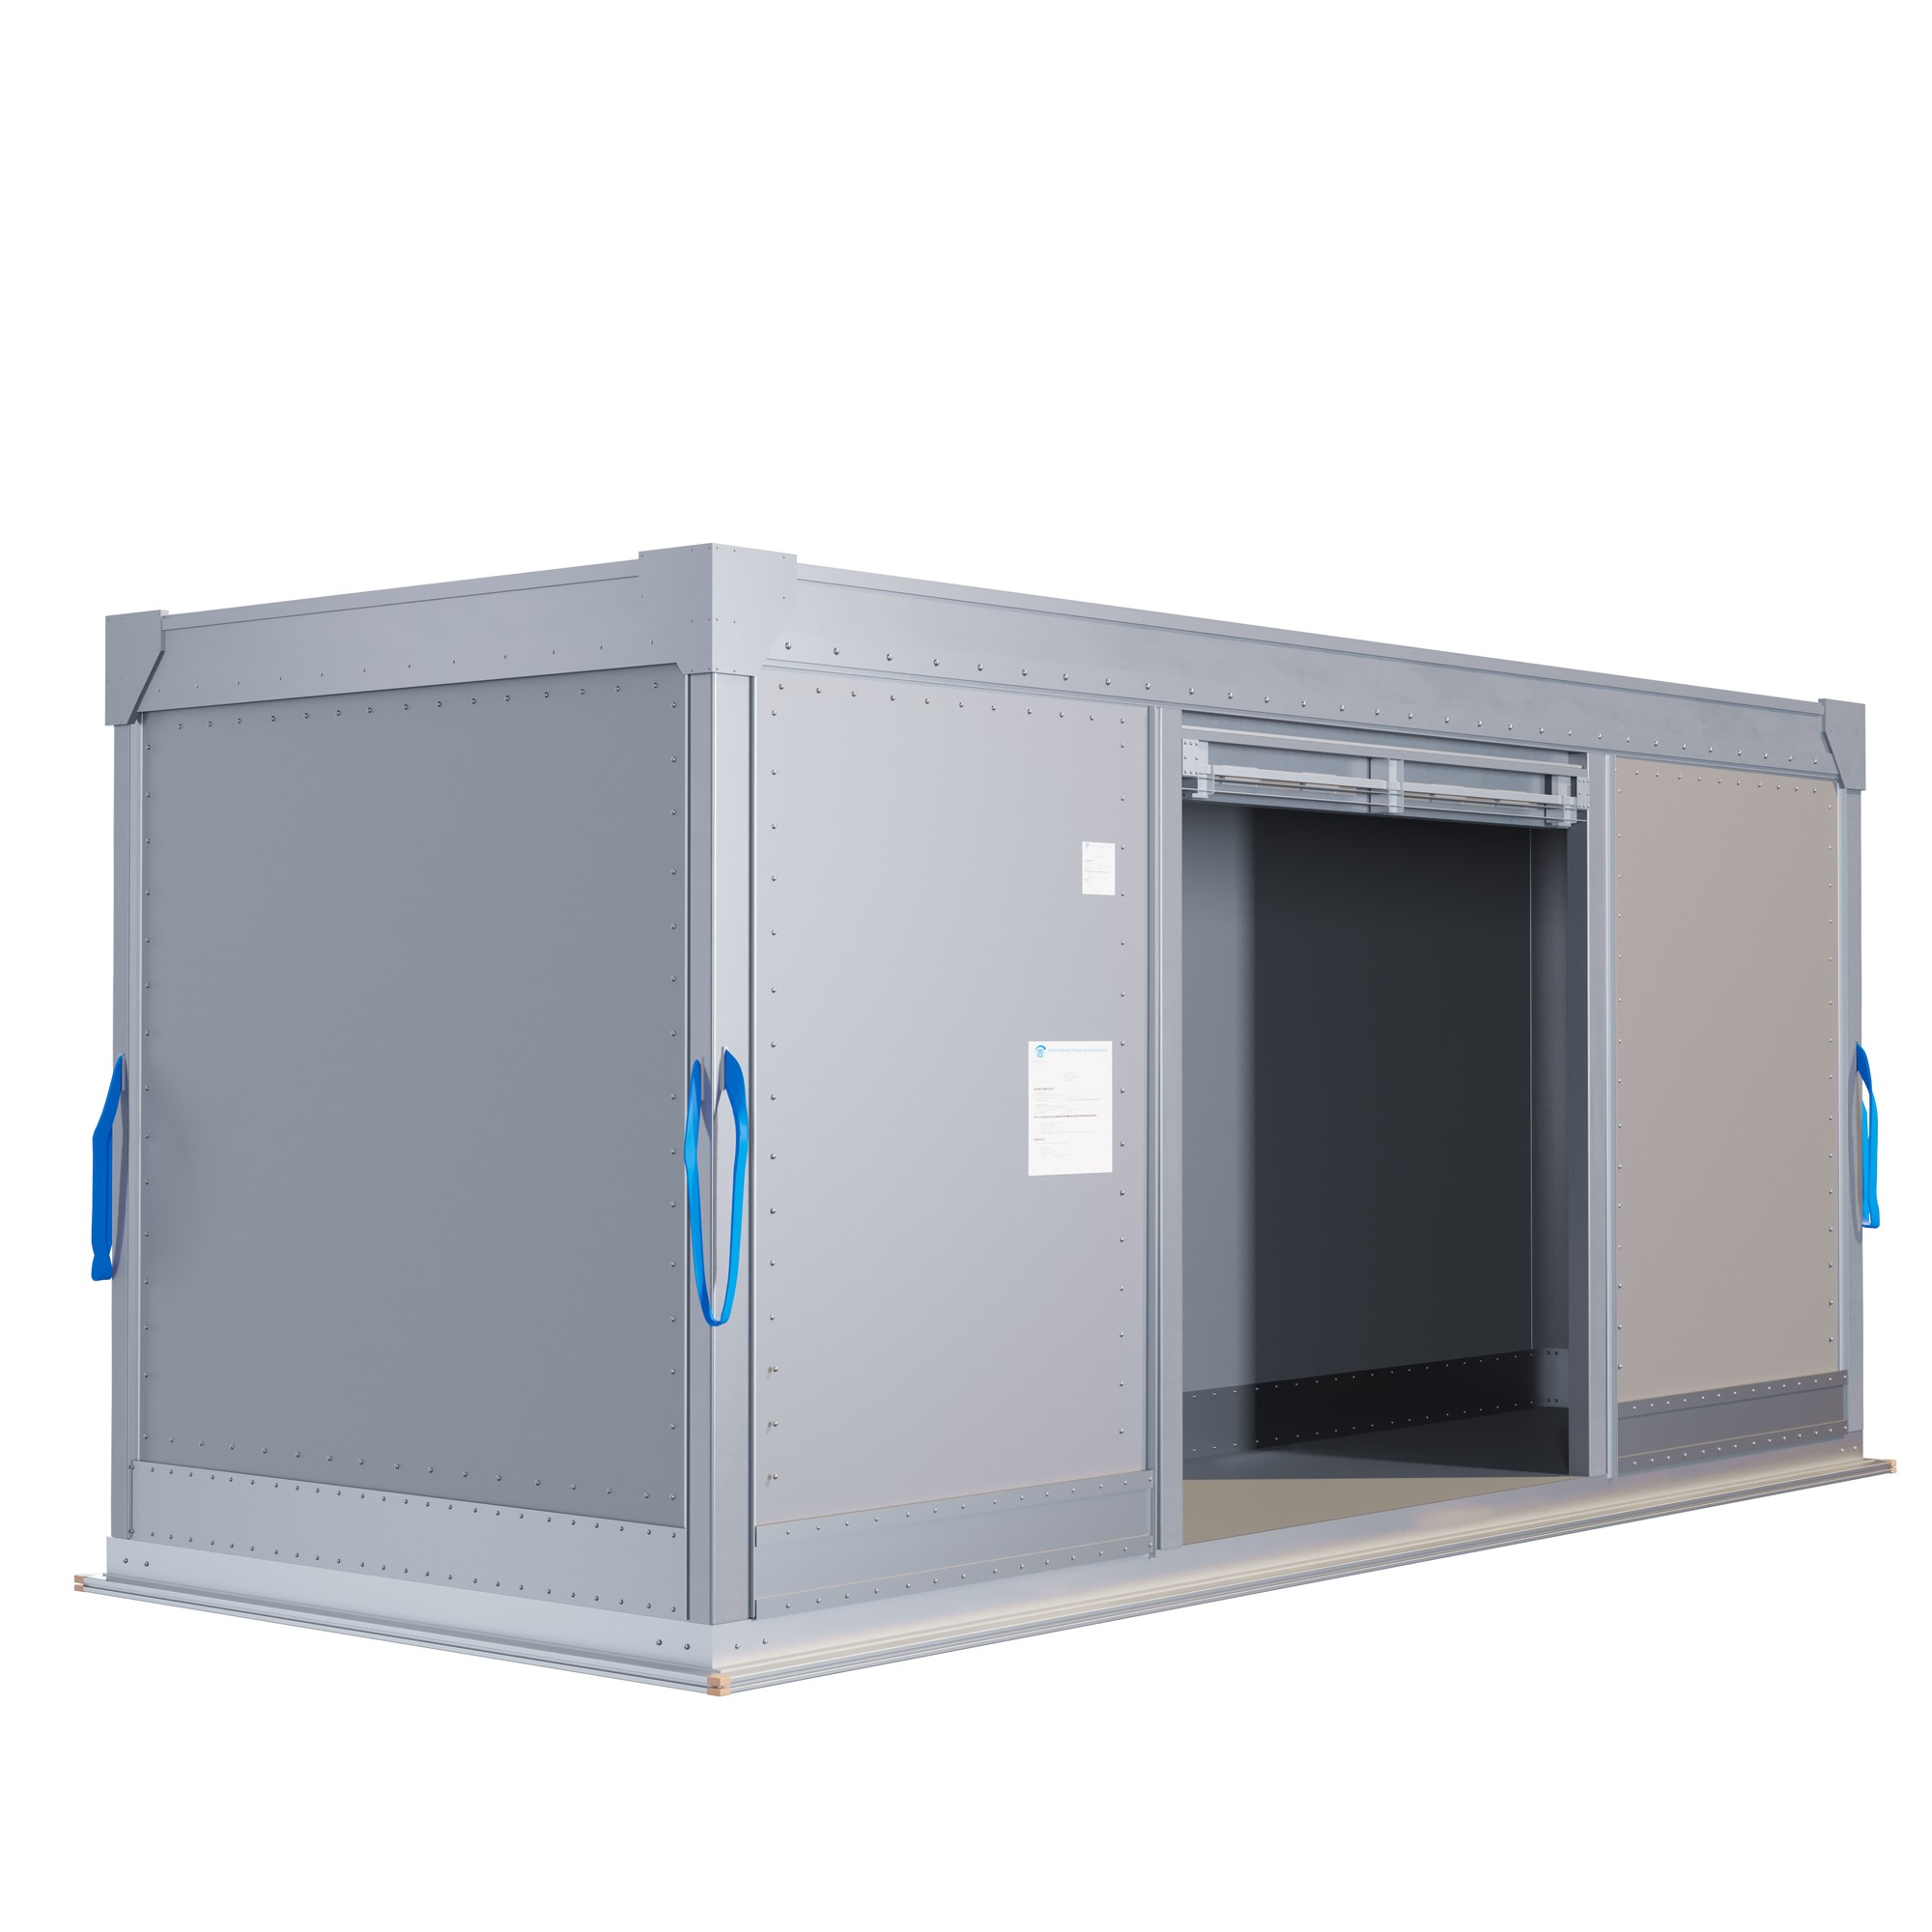 Totalpack® Air Cargo Containers for Lower Deck